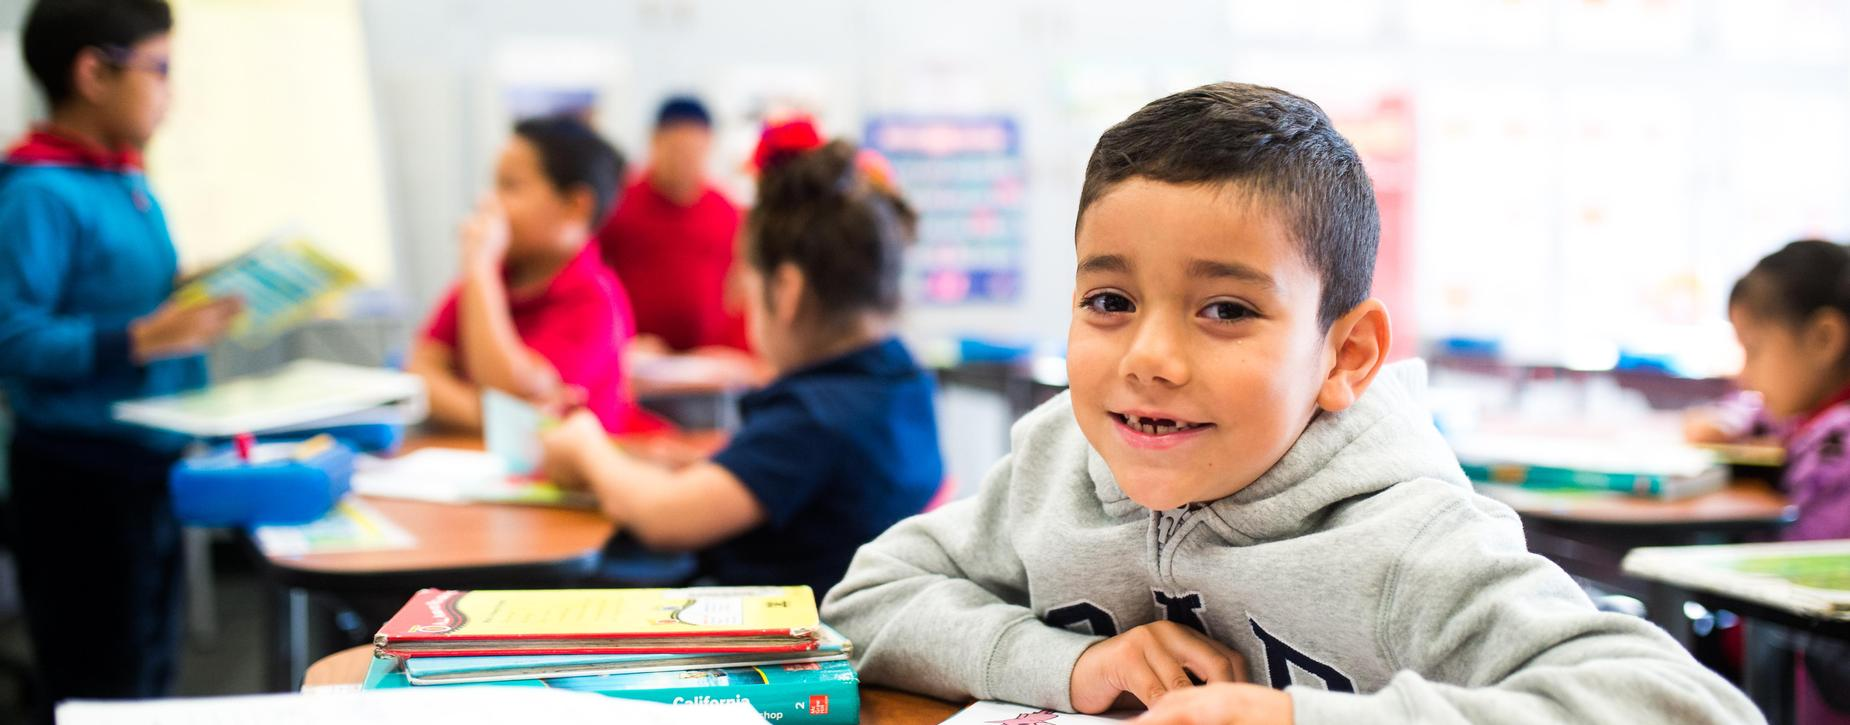 smiling boy at desk in classroom